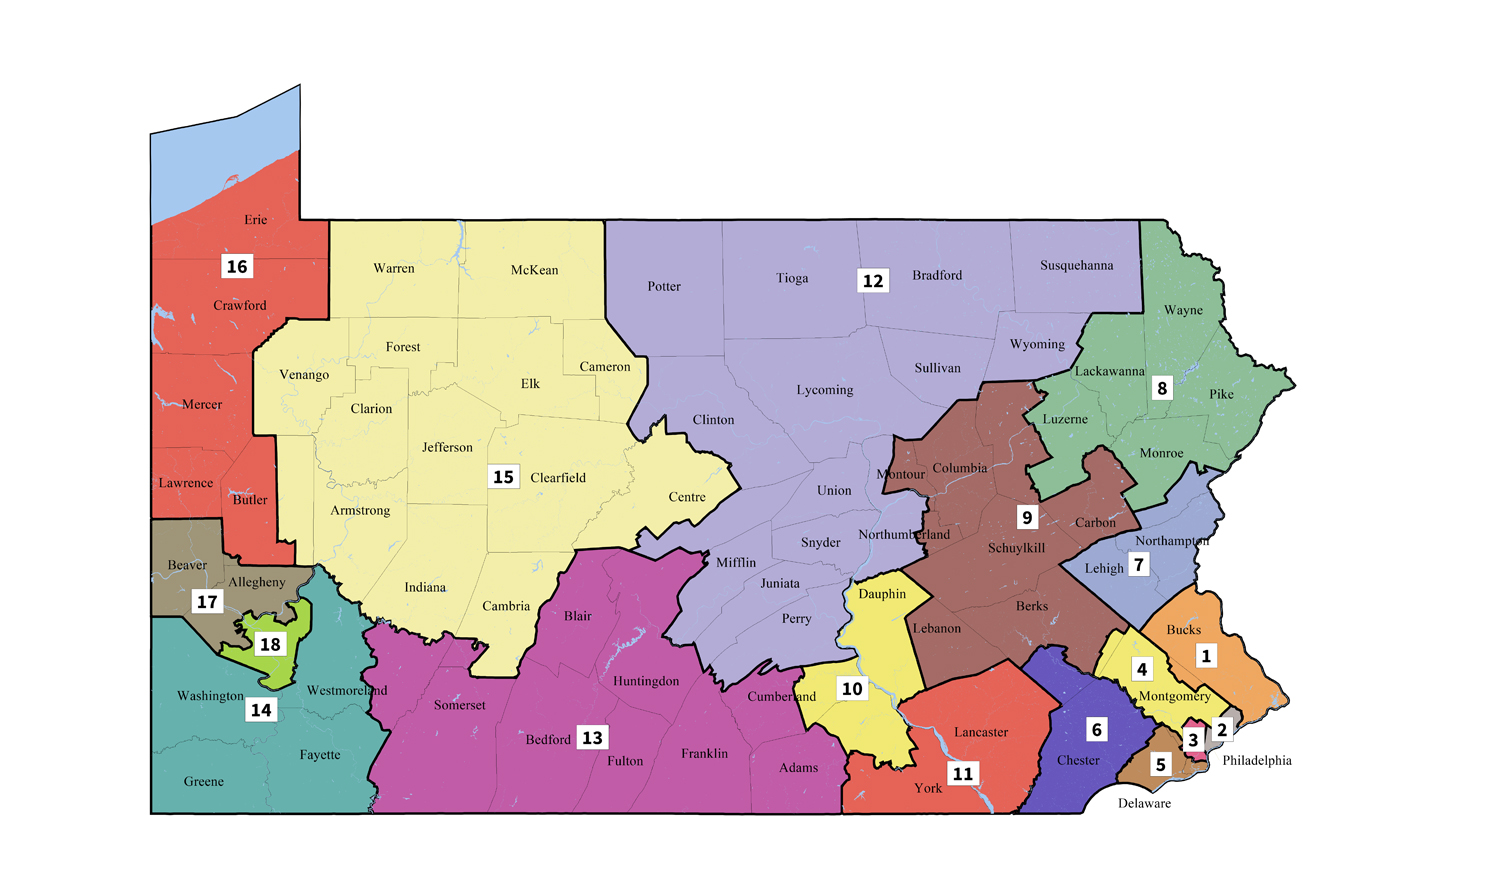 Map of Pennsylvania's congressional districts.